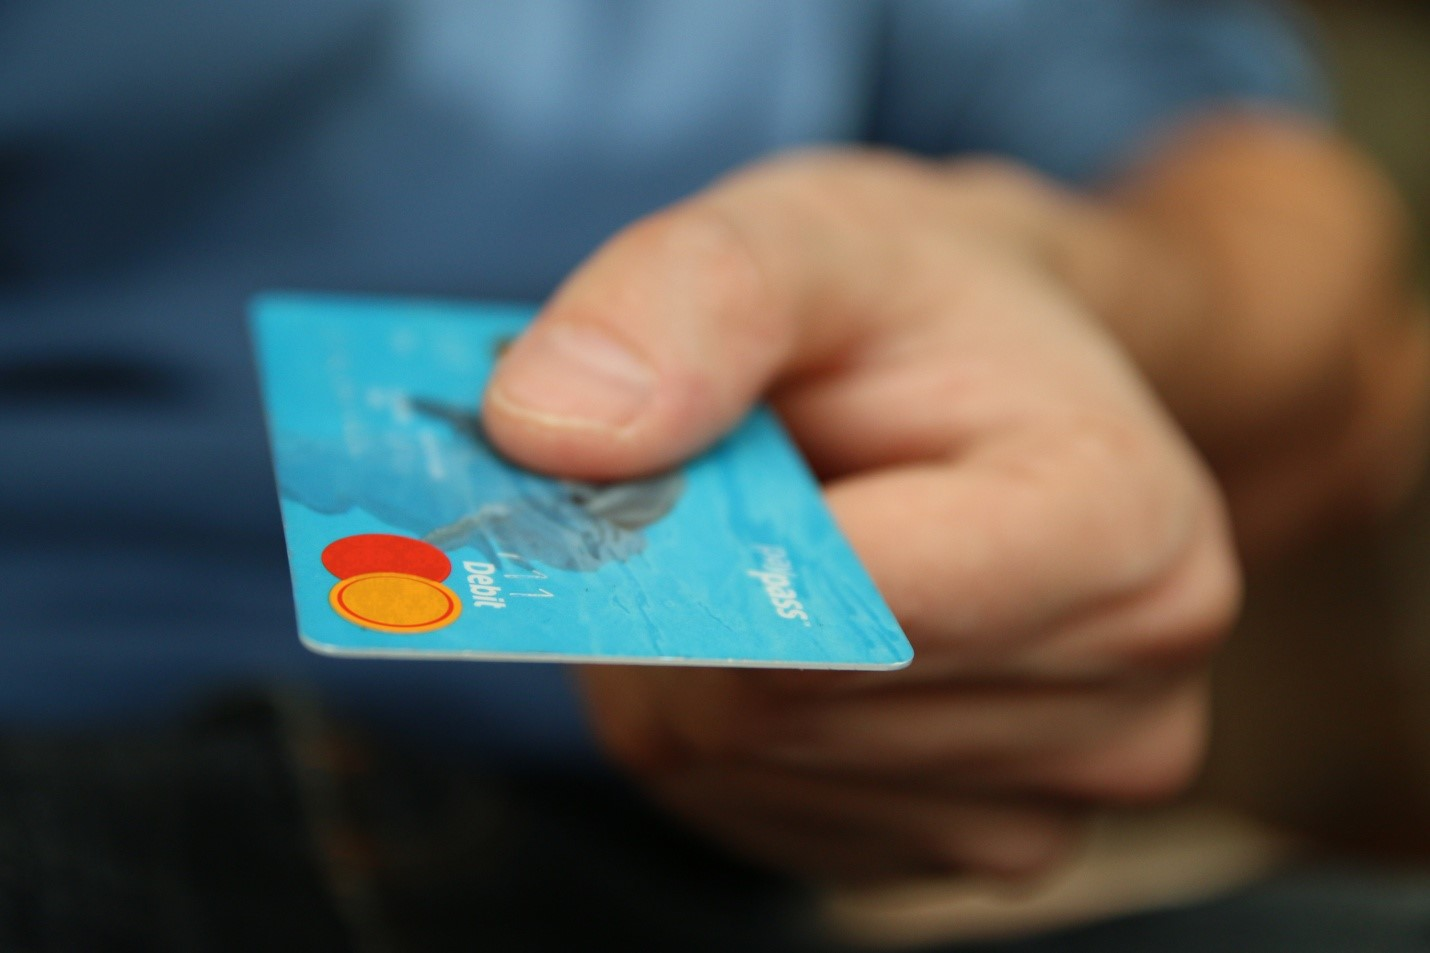 10 Crucial Things to Consider When Choosing a Locksmith credit card